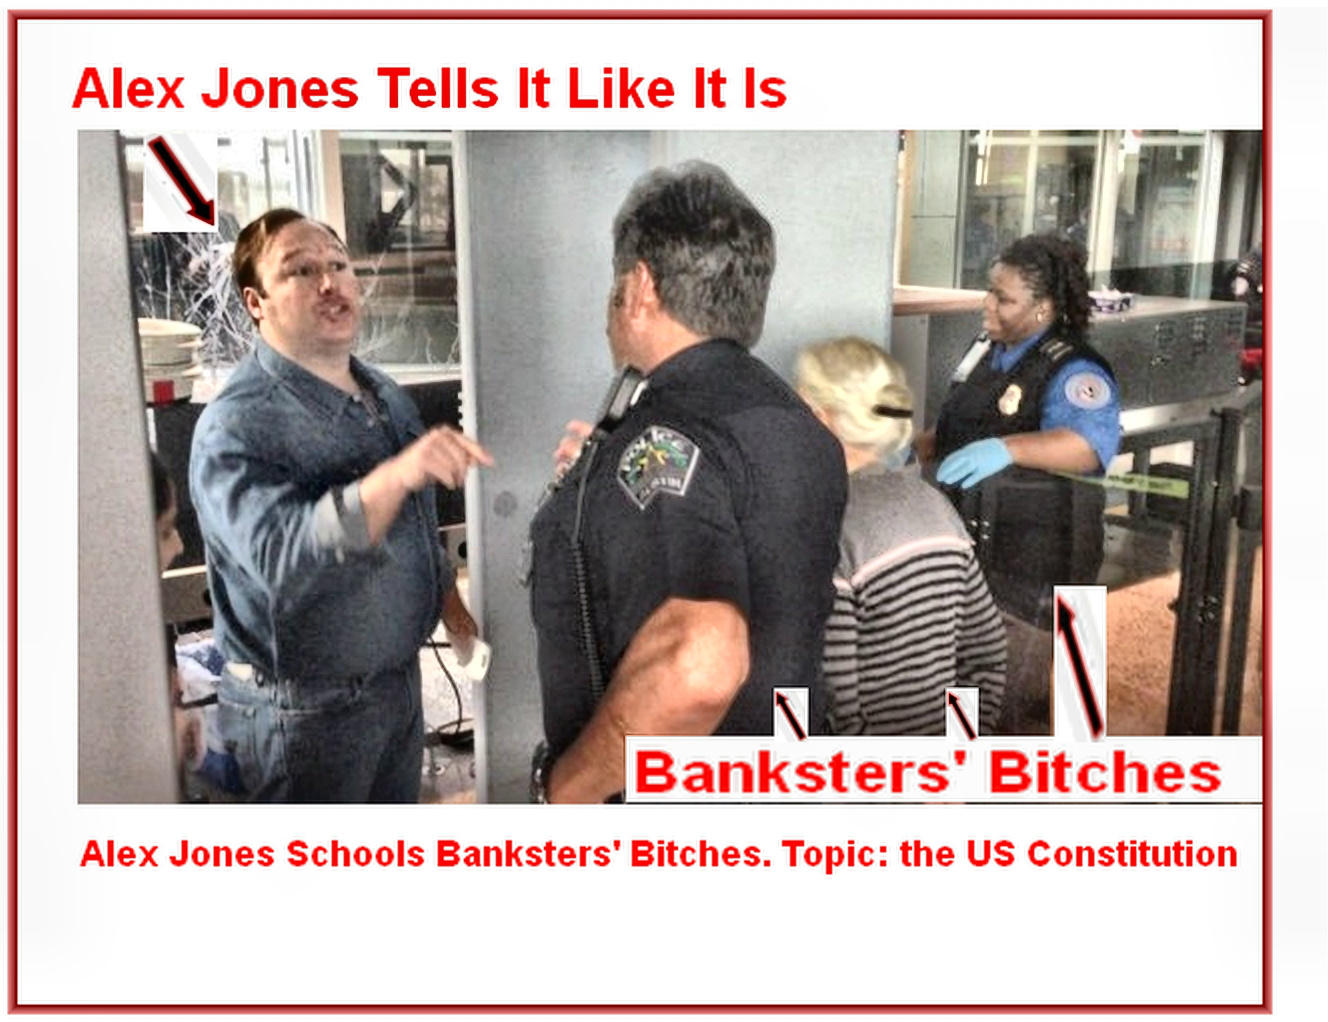 Alex Jones Schools Banksters' Bitches